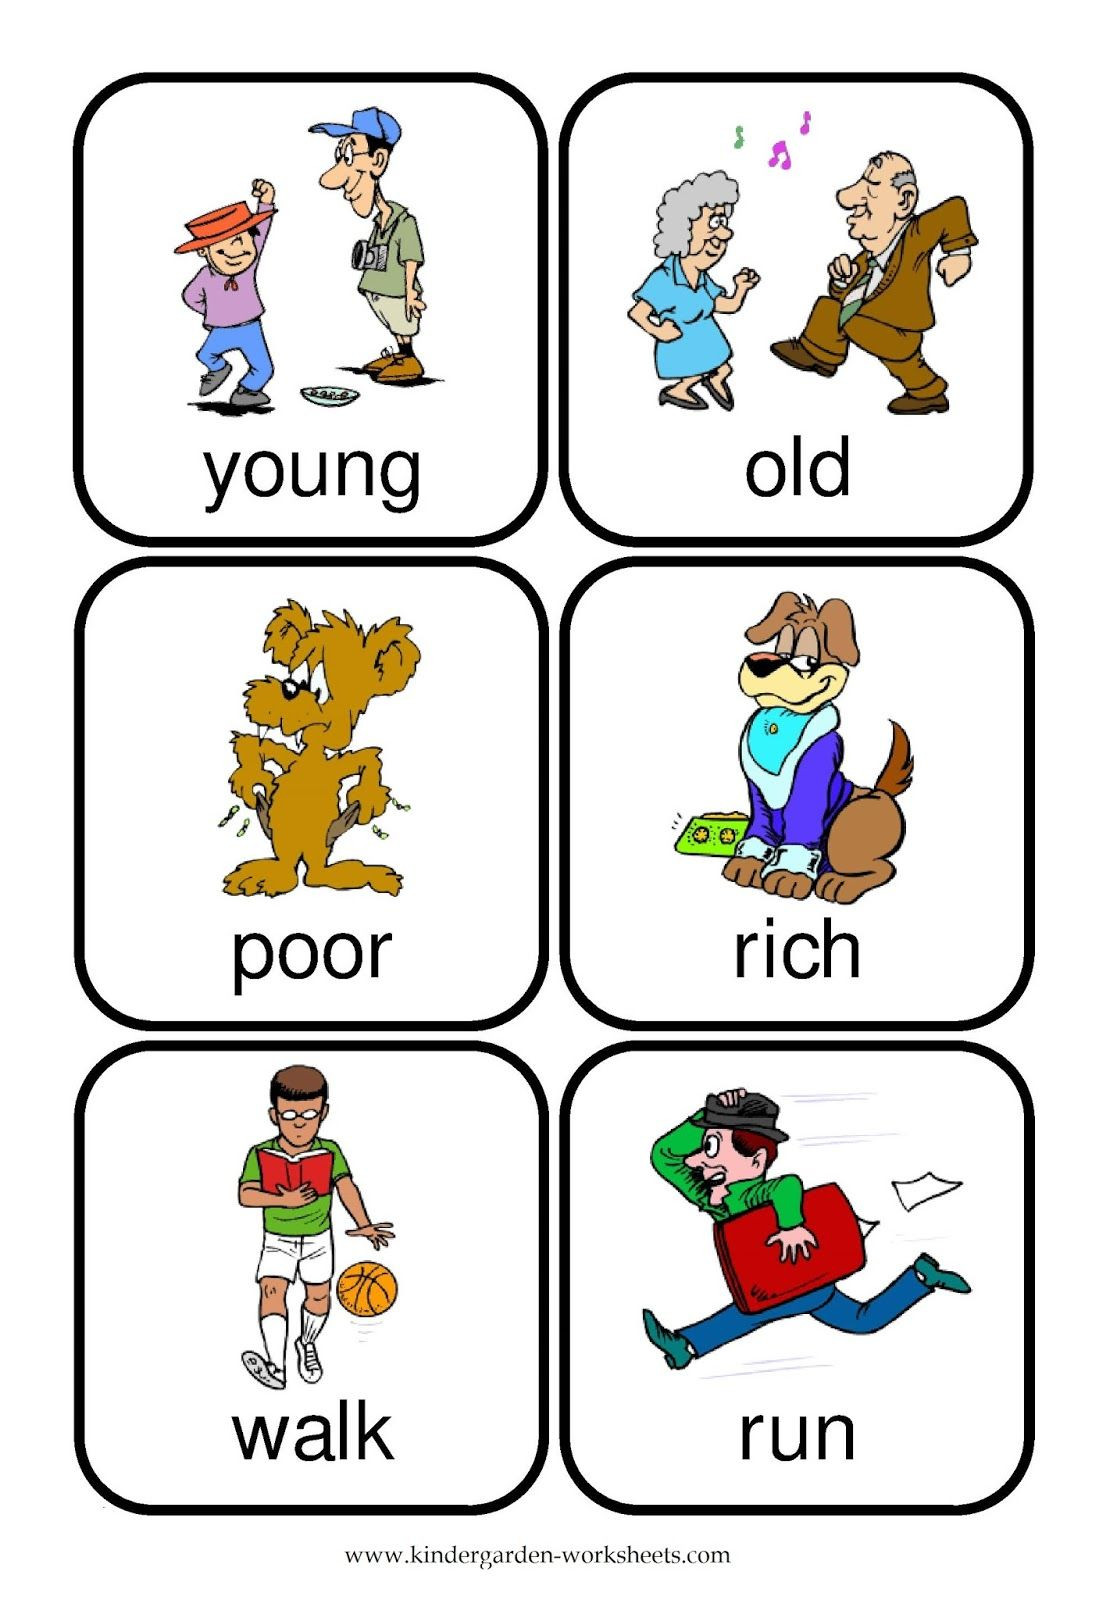 Preschool Opposites Worksheets Word Preschoolers Yahoo Image Search Results